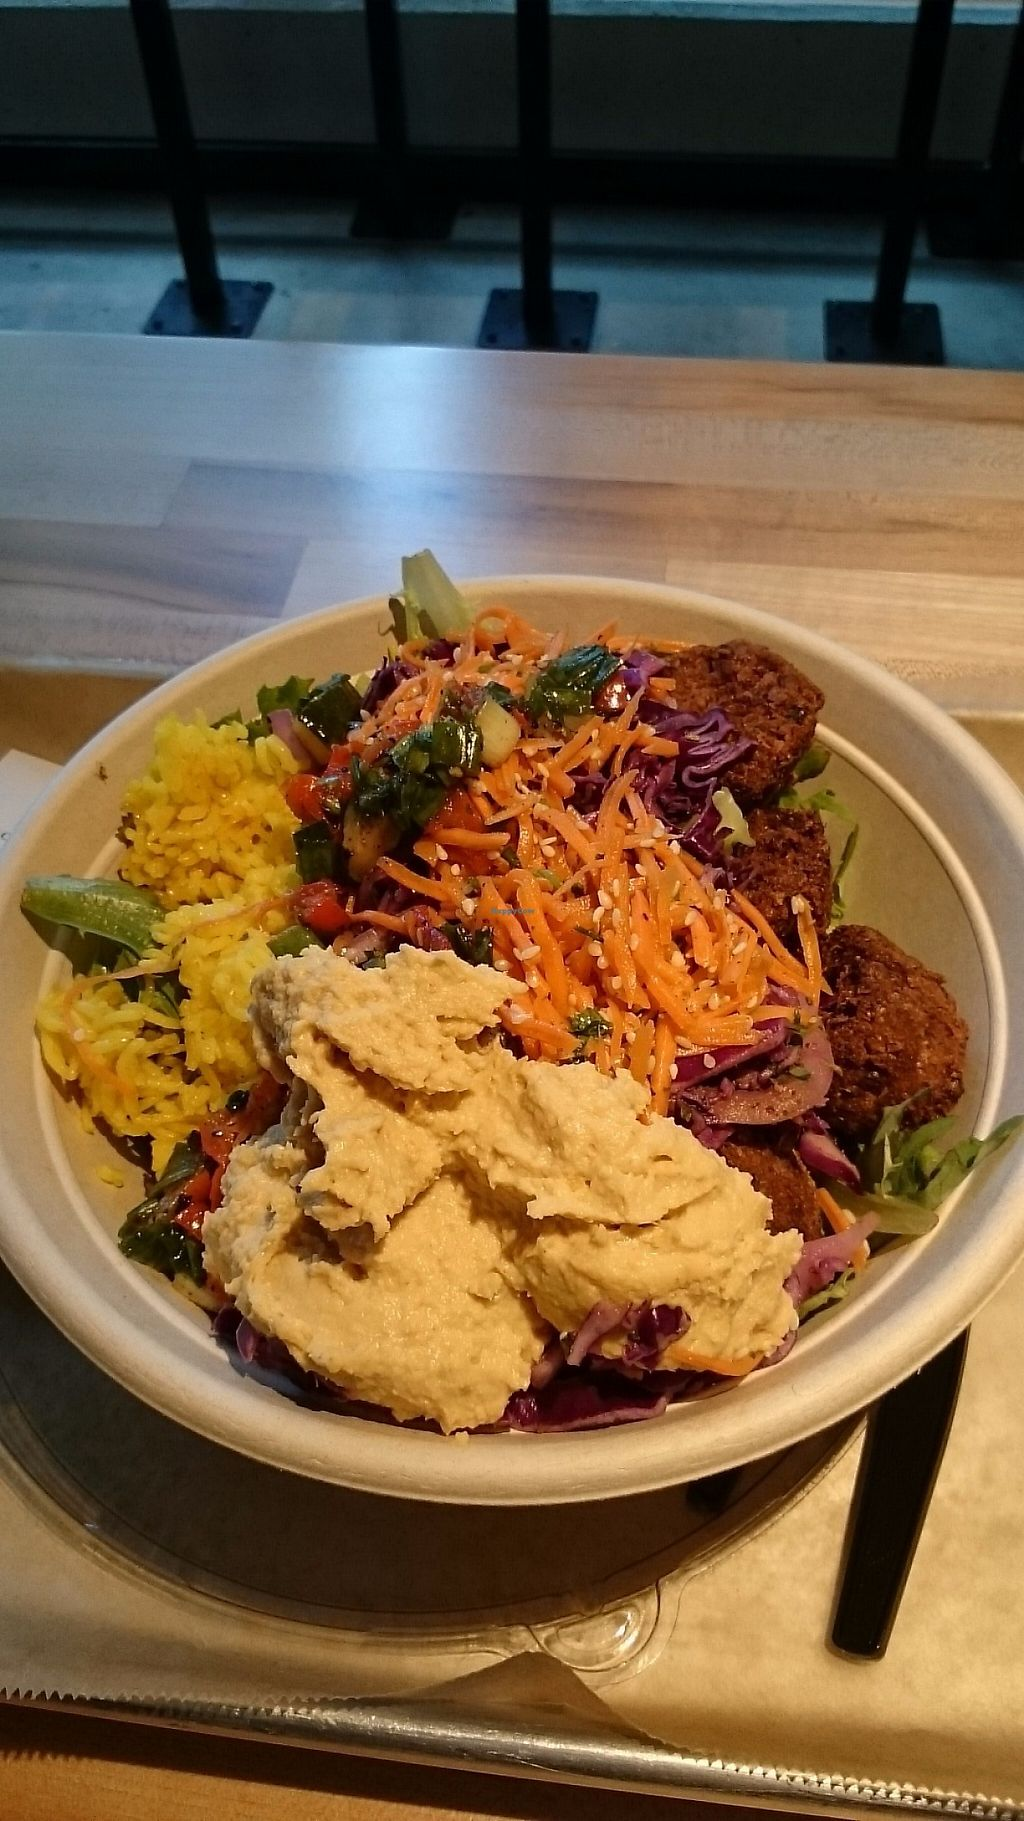 """Photo of Noon Mediterranean  by <a href=""""/members/profile/ZoraySpielvogel"""">ZoraySpielvogel</a> <br/>Salad bowl with falafel.  <br/> May 31, 2017  - <a href='/contact/abuse/image/89544/264552'>Report</a>"""